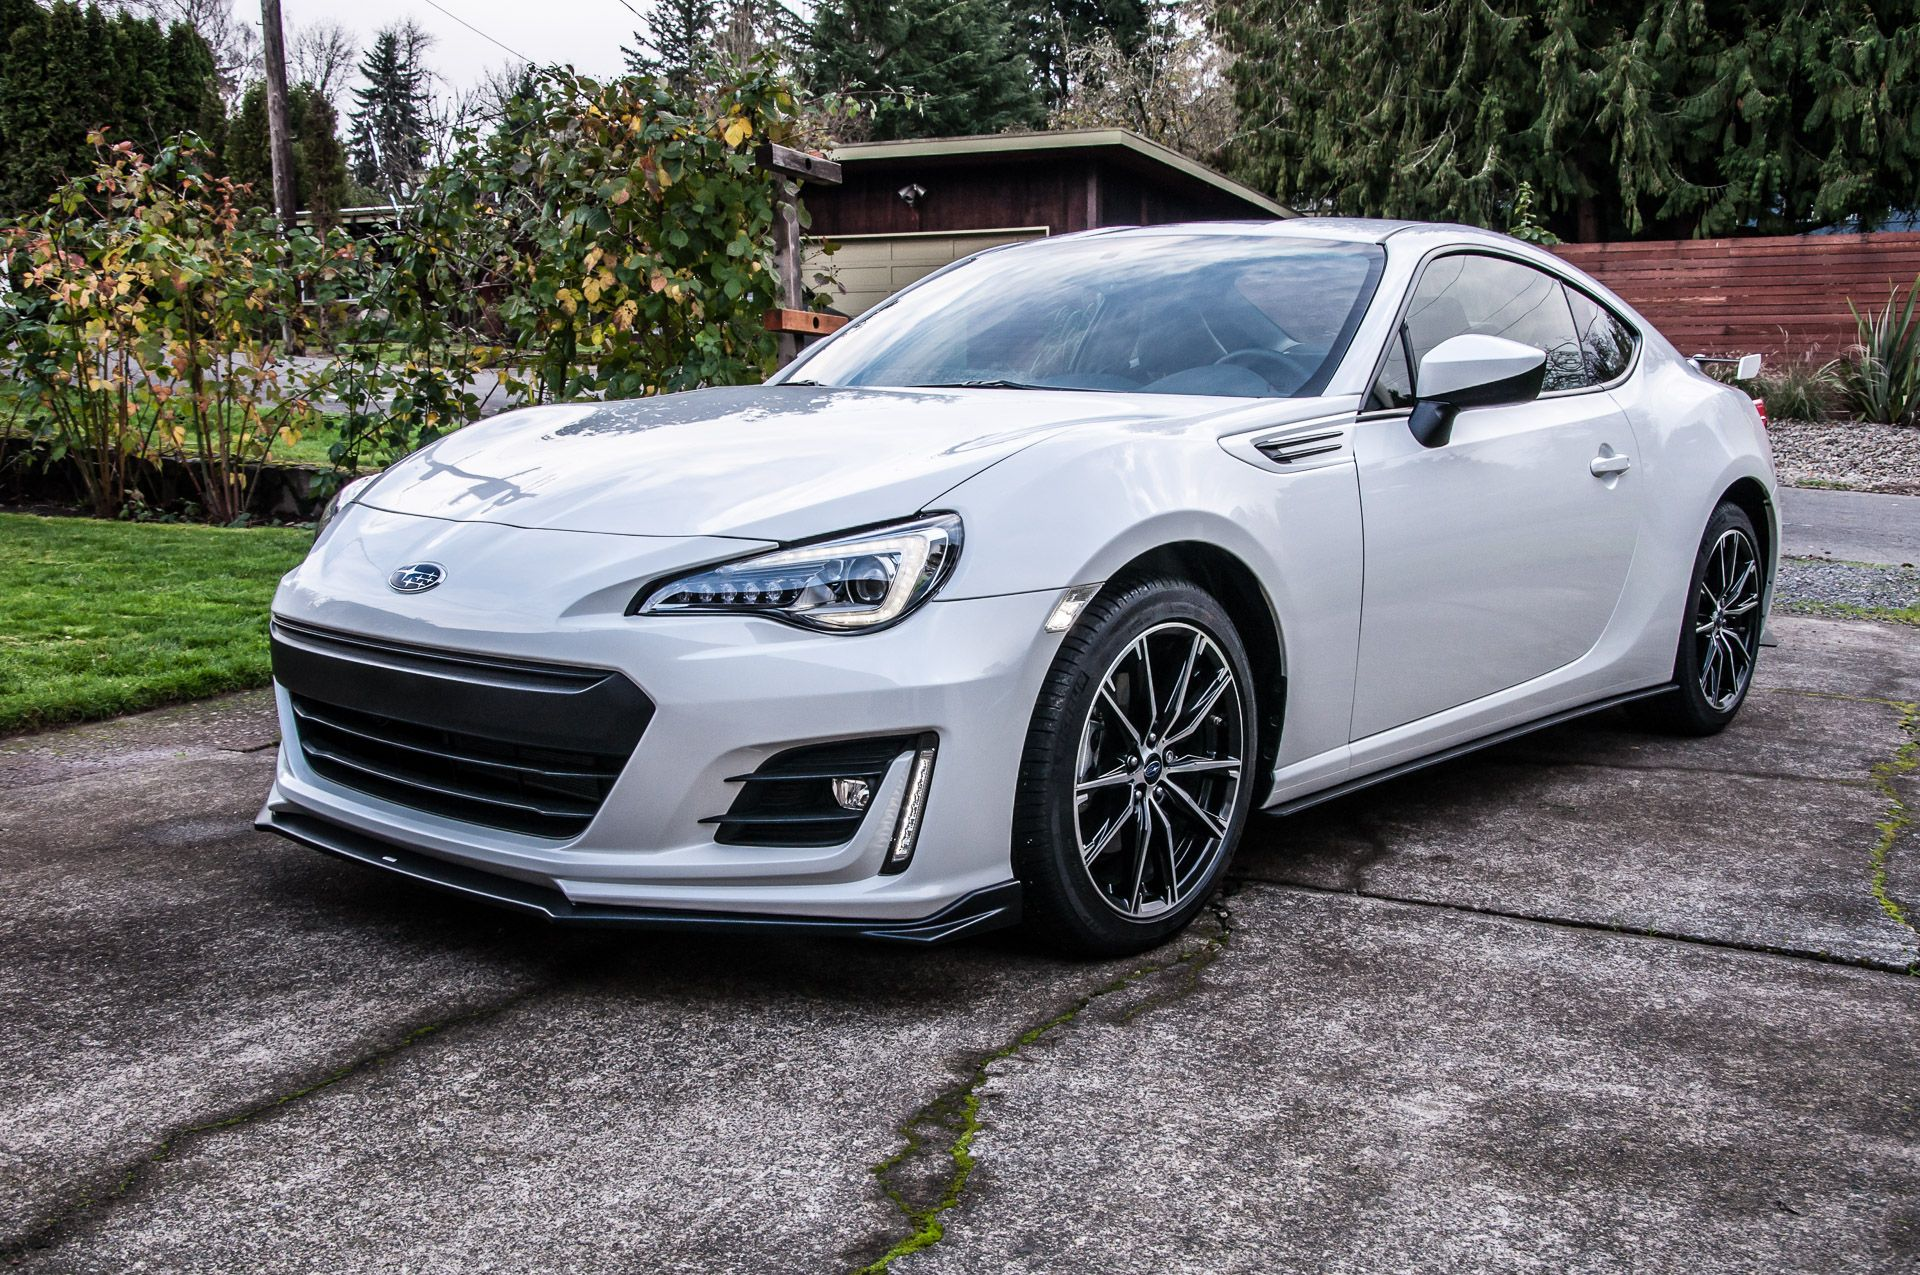 White 17 Brz With Some Sti Bits Nice The Vertical Drl Strips Are Kinda Neat